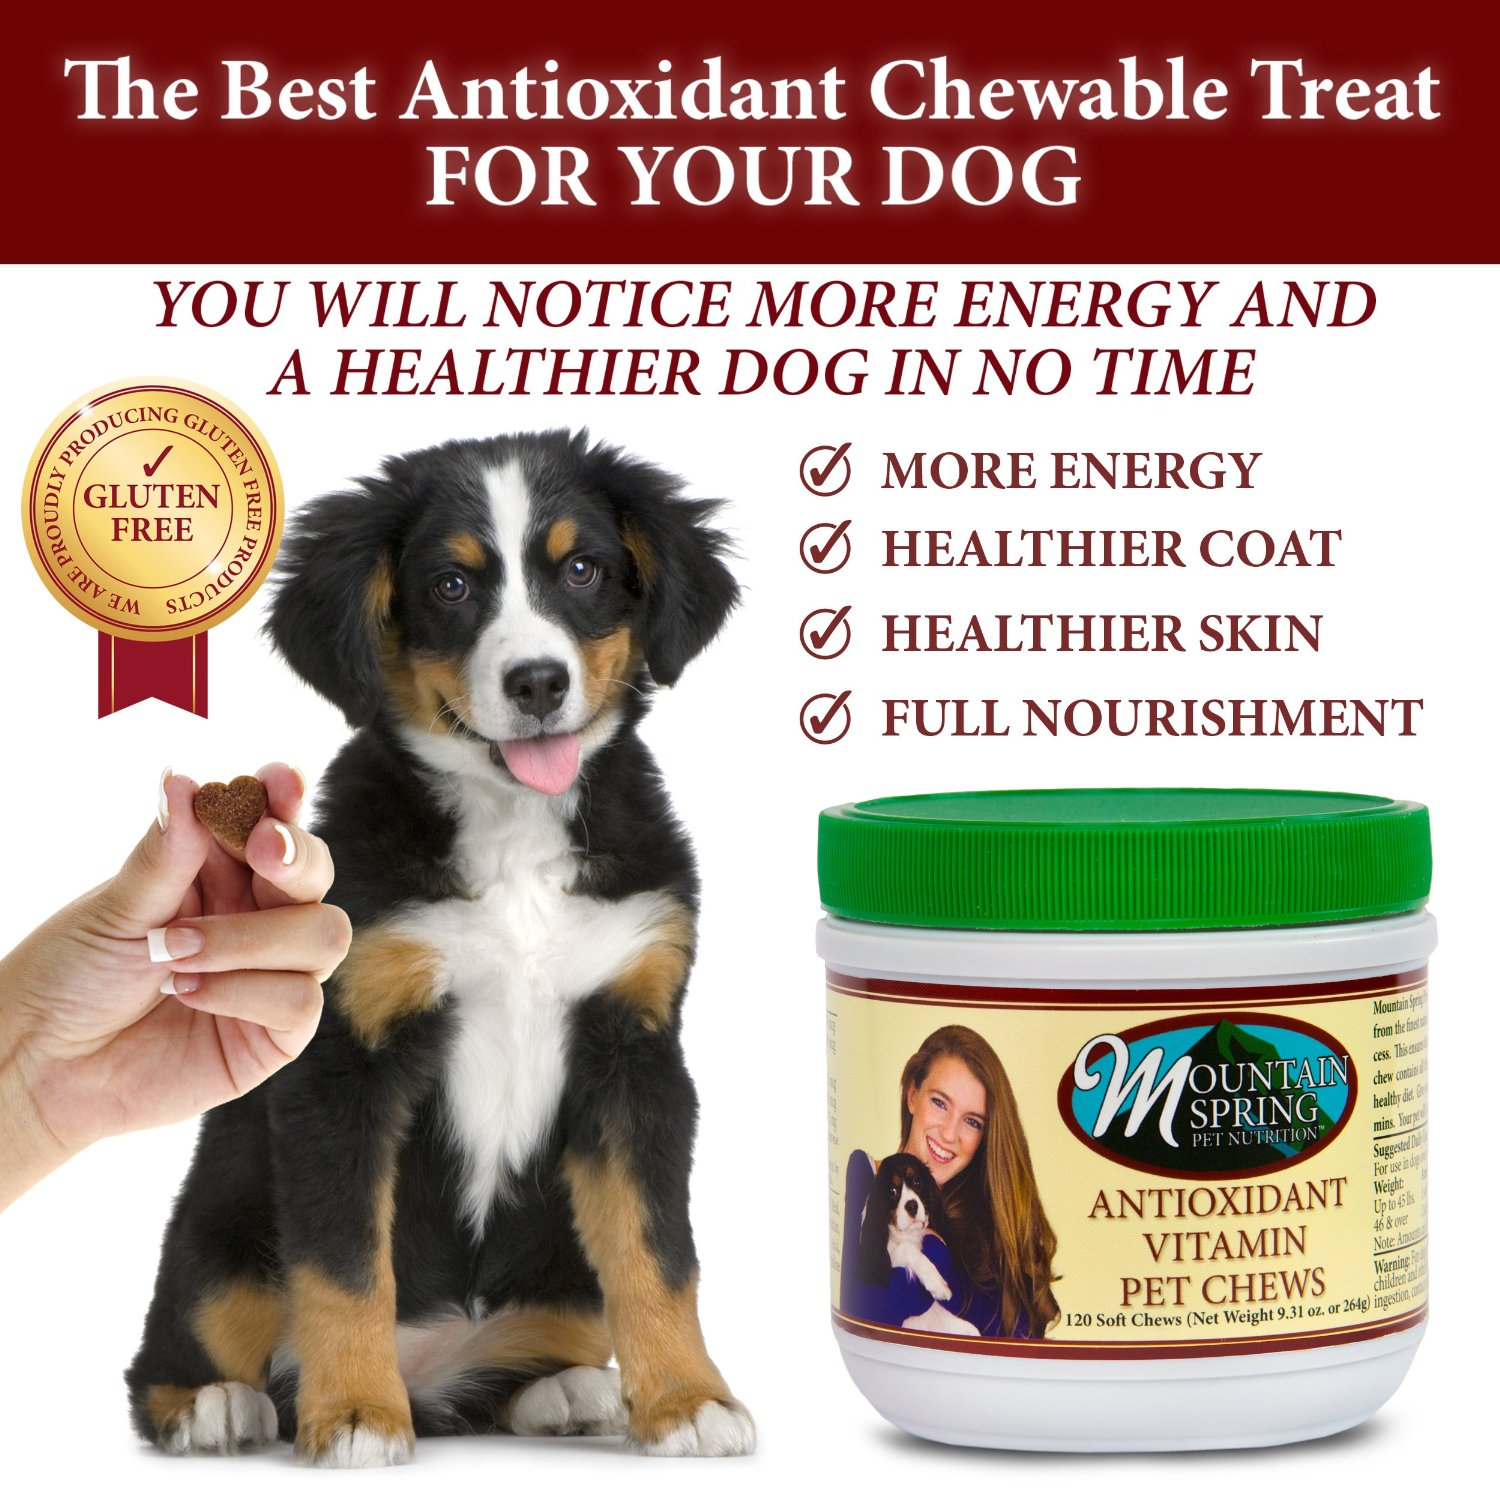 Notice more energy and a healthier dog